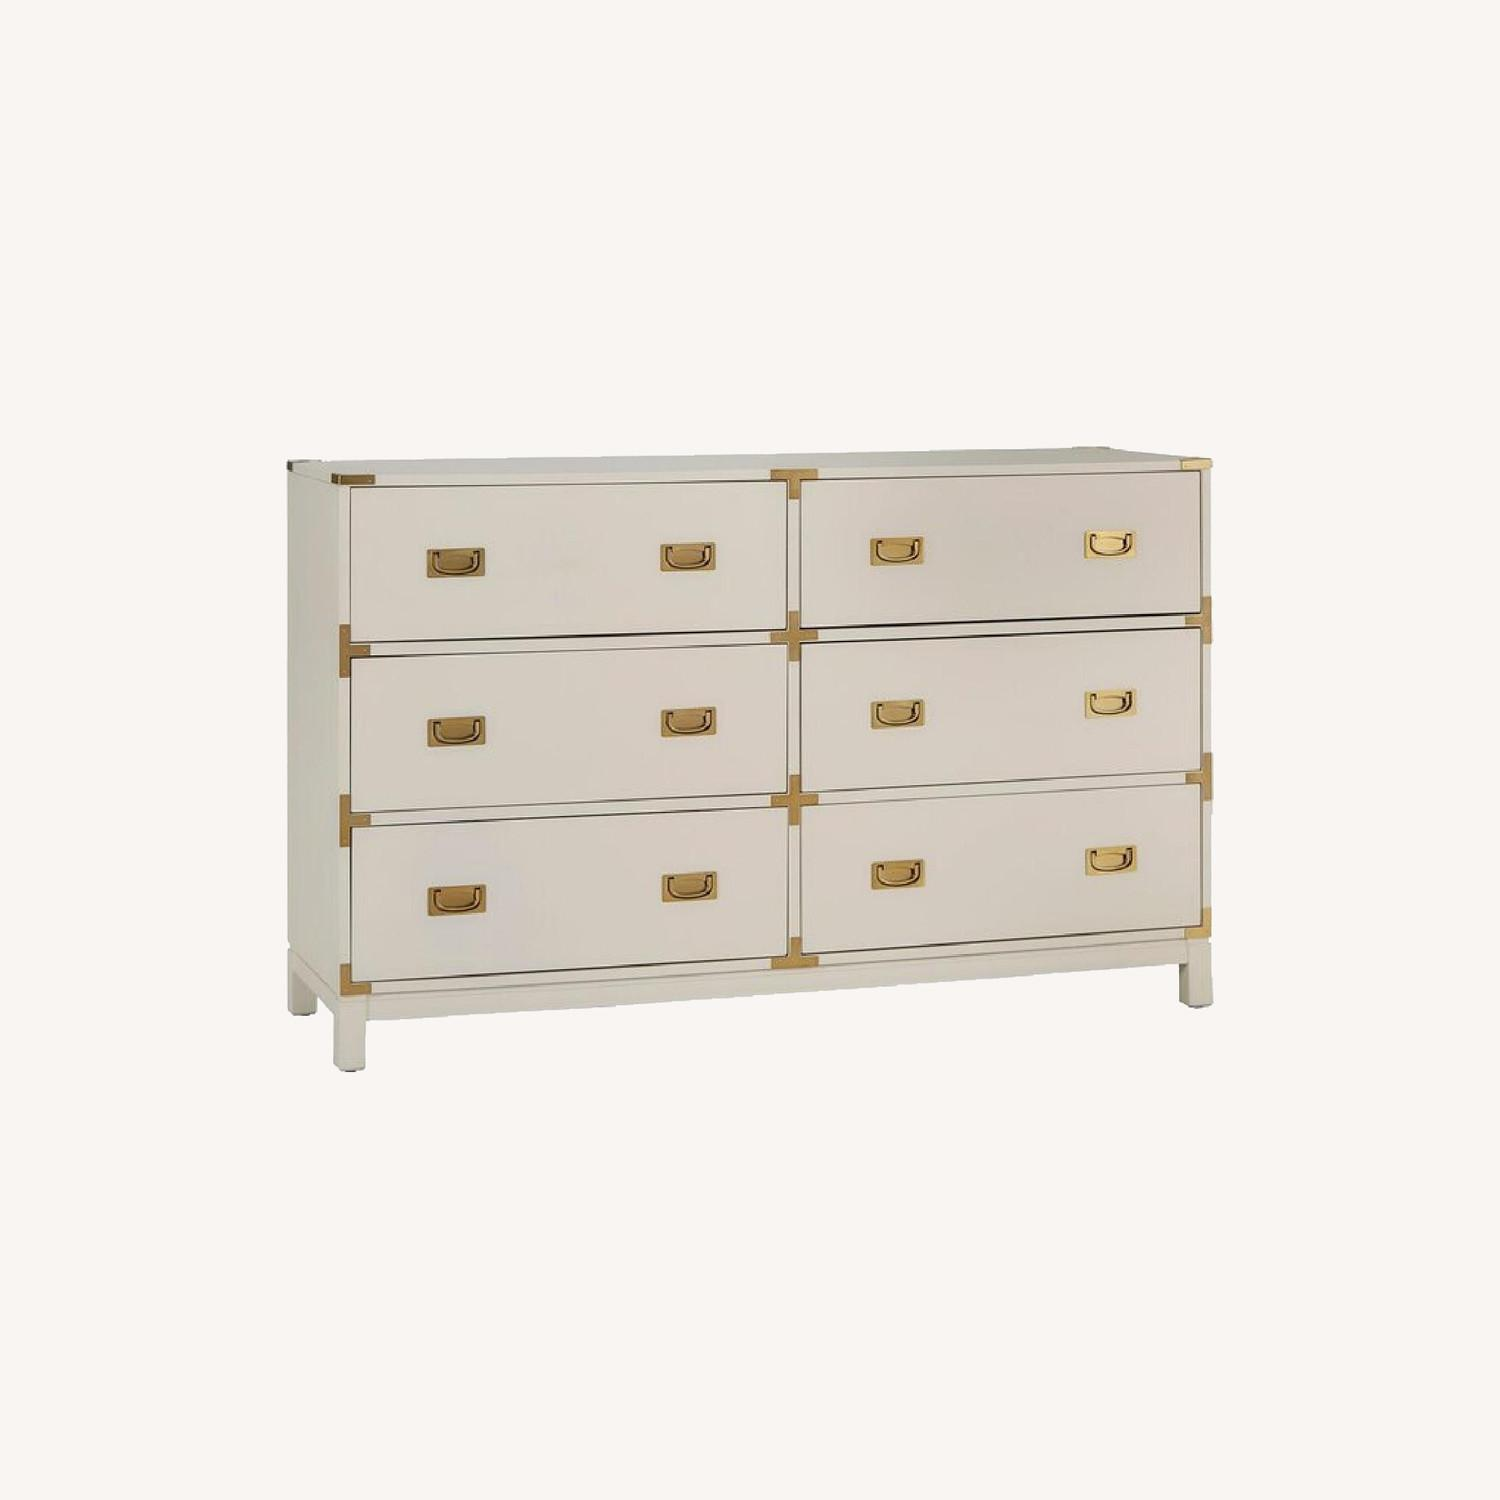 Wayfair White and Gold Campaign Dresser - image-0